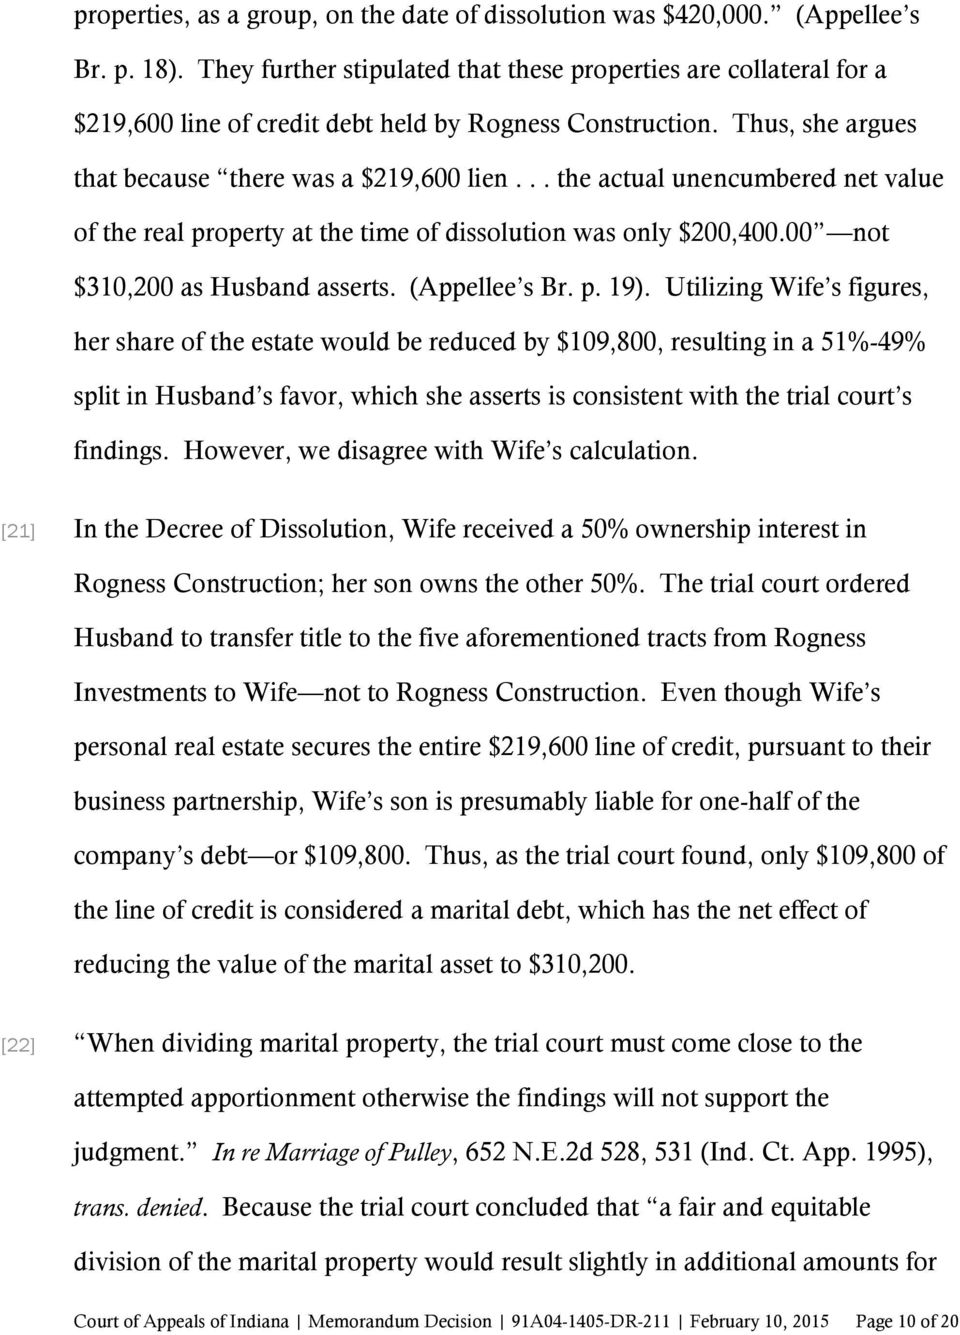 .. the actual unencumbered net value of the real property at the time of dissolution was only $200,400.00 not $310,200 as Husband asserts. (Appellee s Br. p. 19).